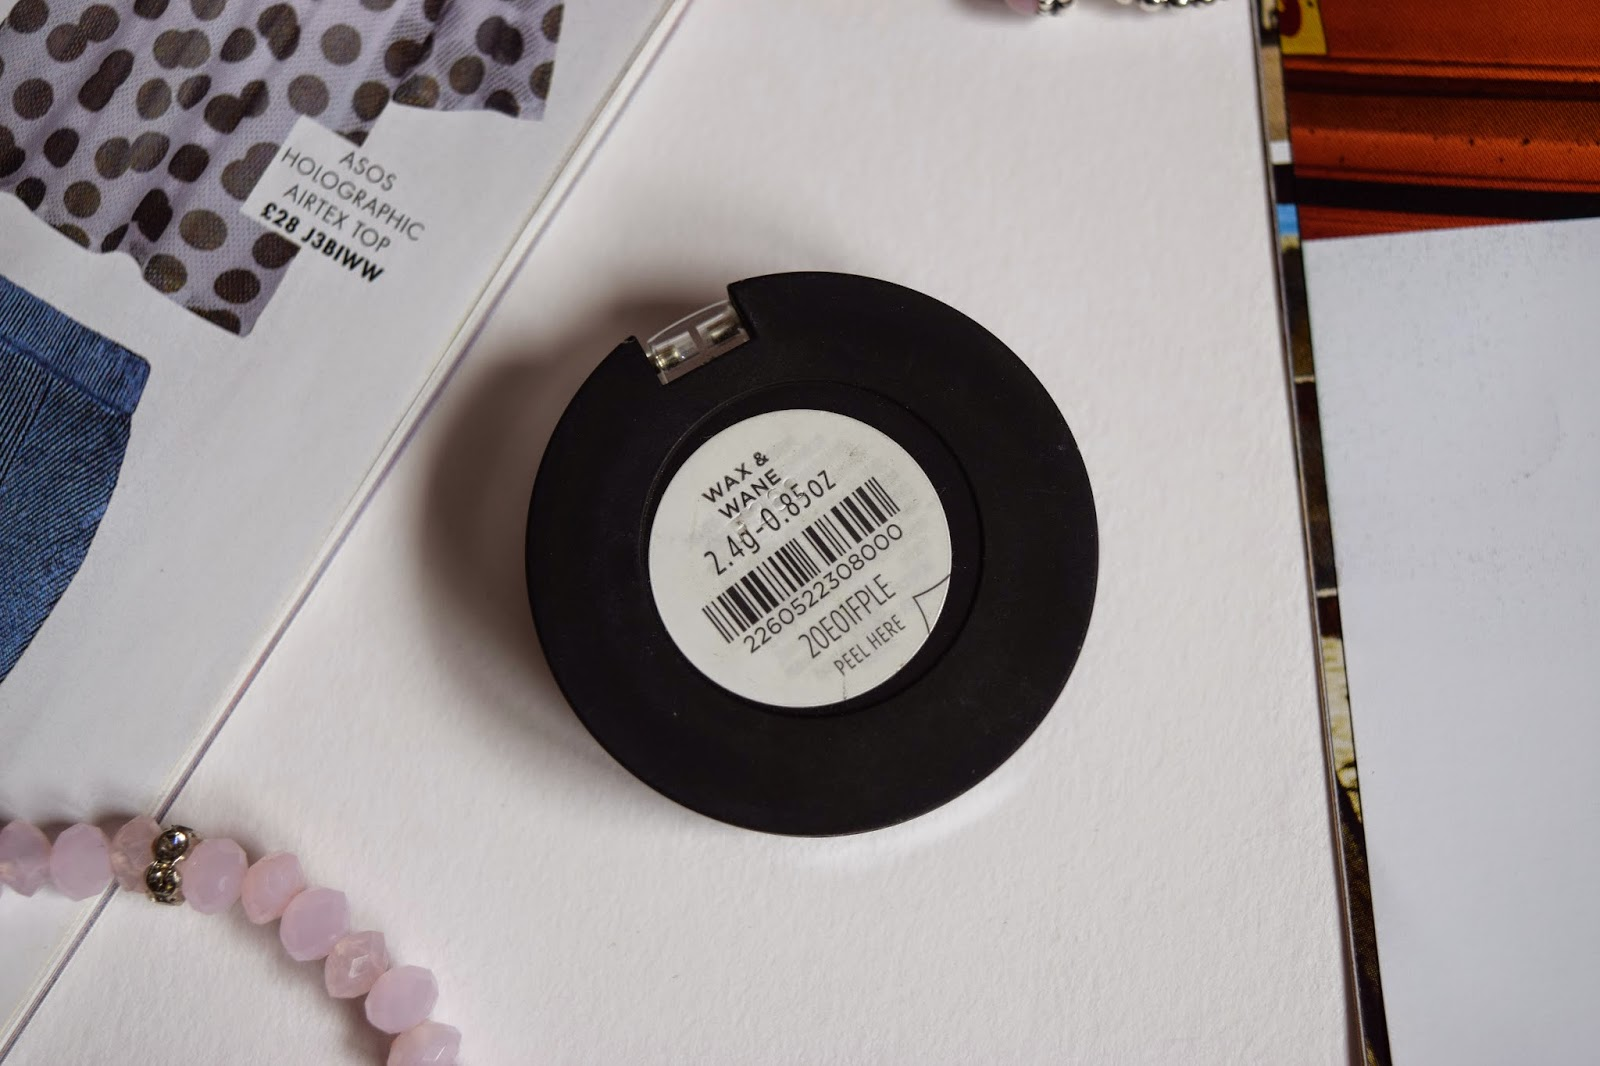 THE BOTTOM OF THE EYESHADOW SINGLE WITH A LABEL THAT READ 'WAX & WANE